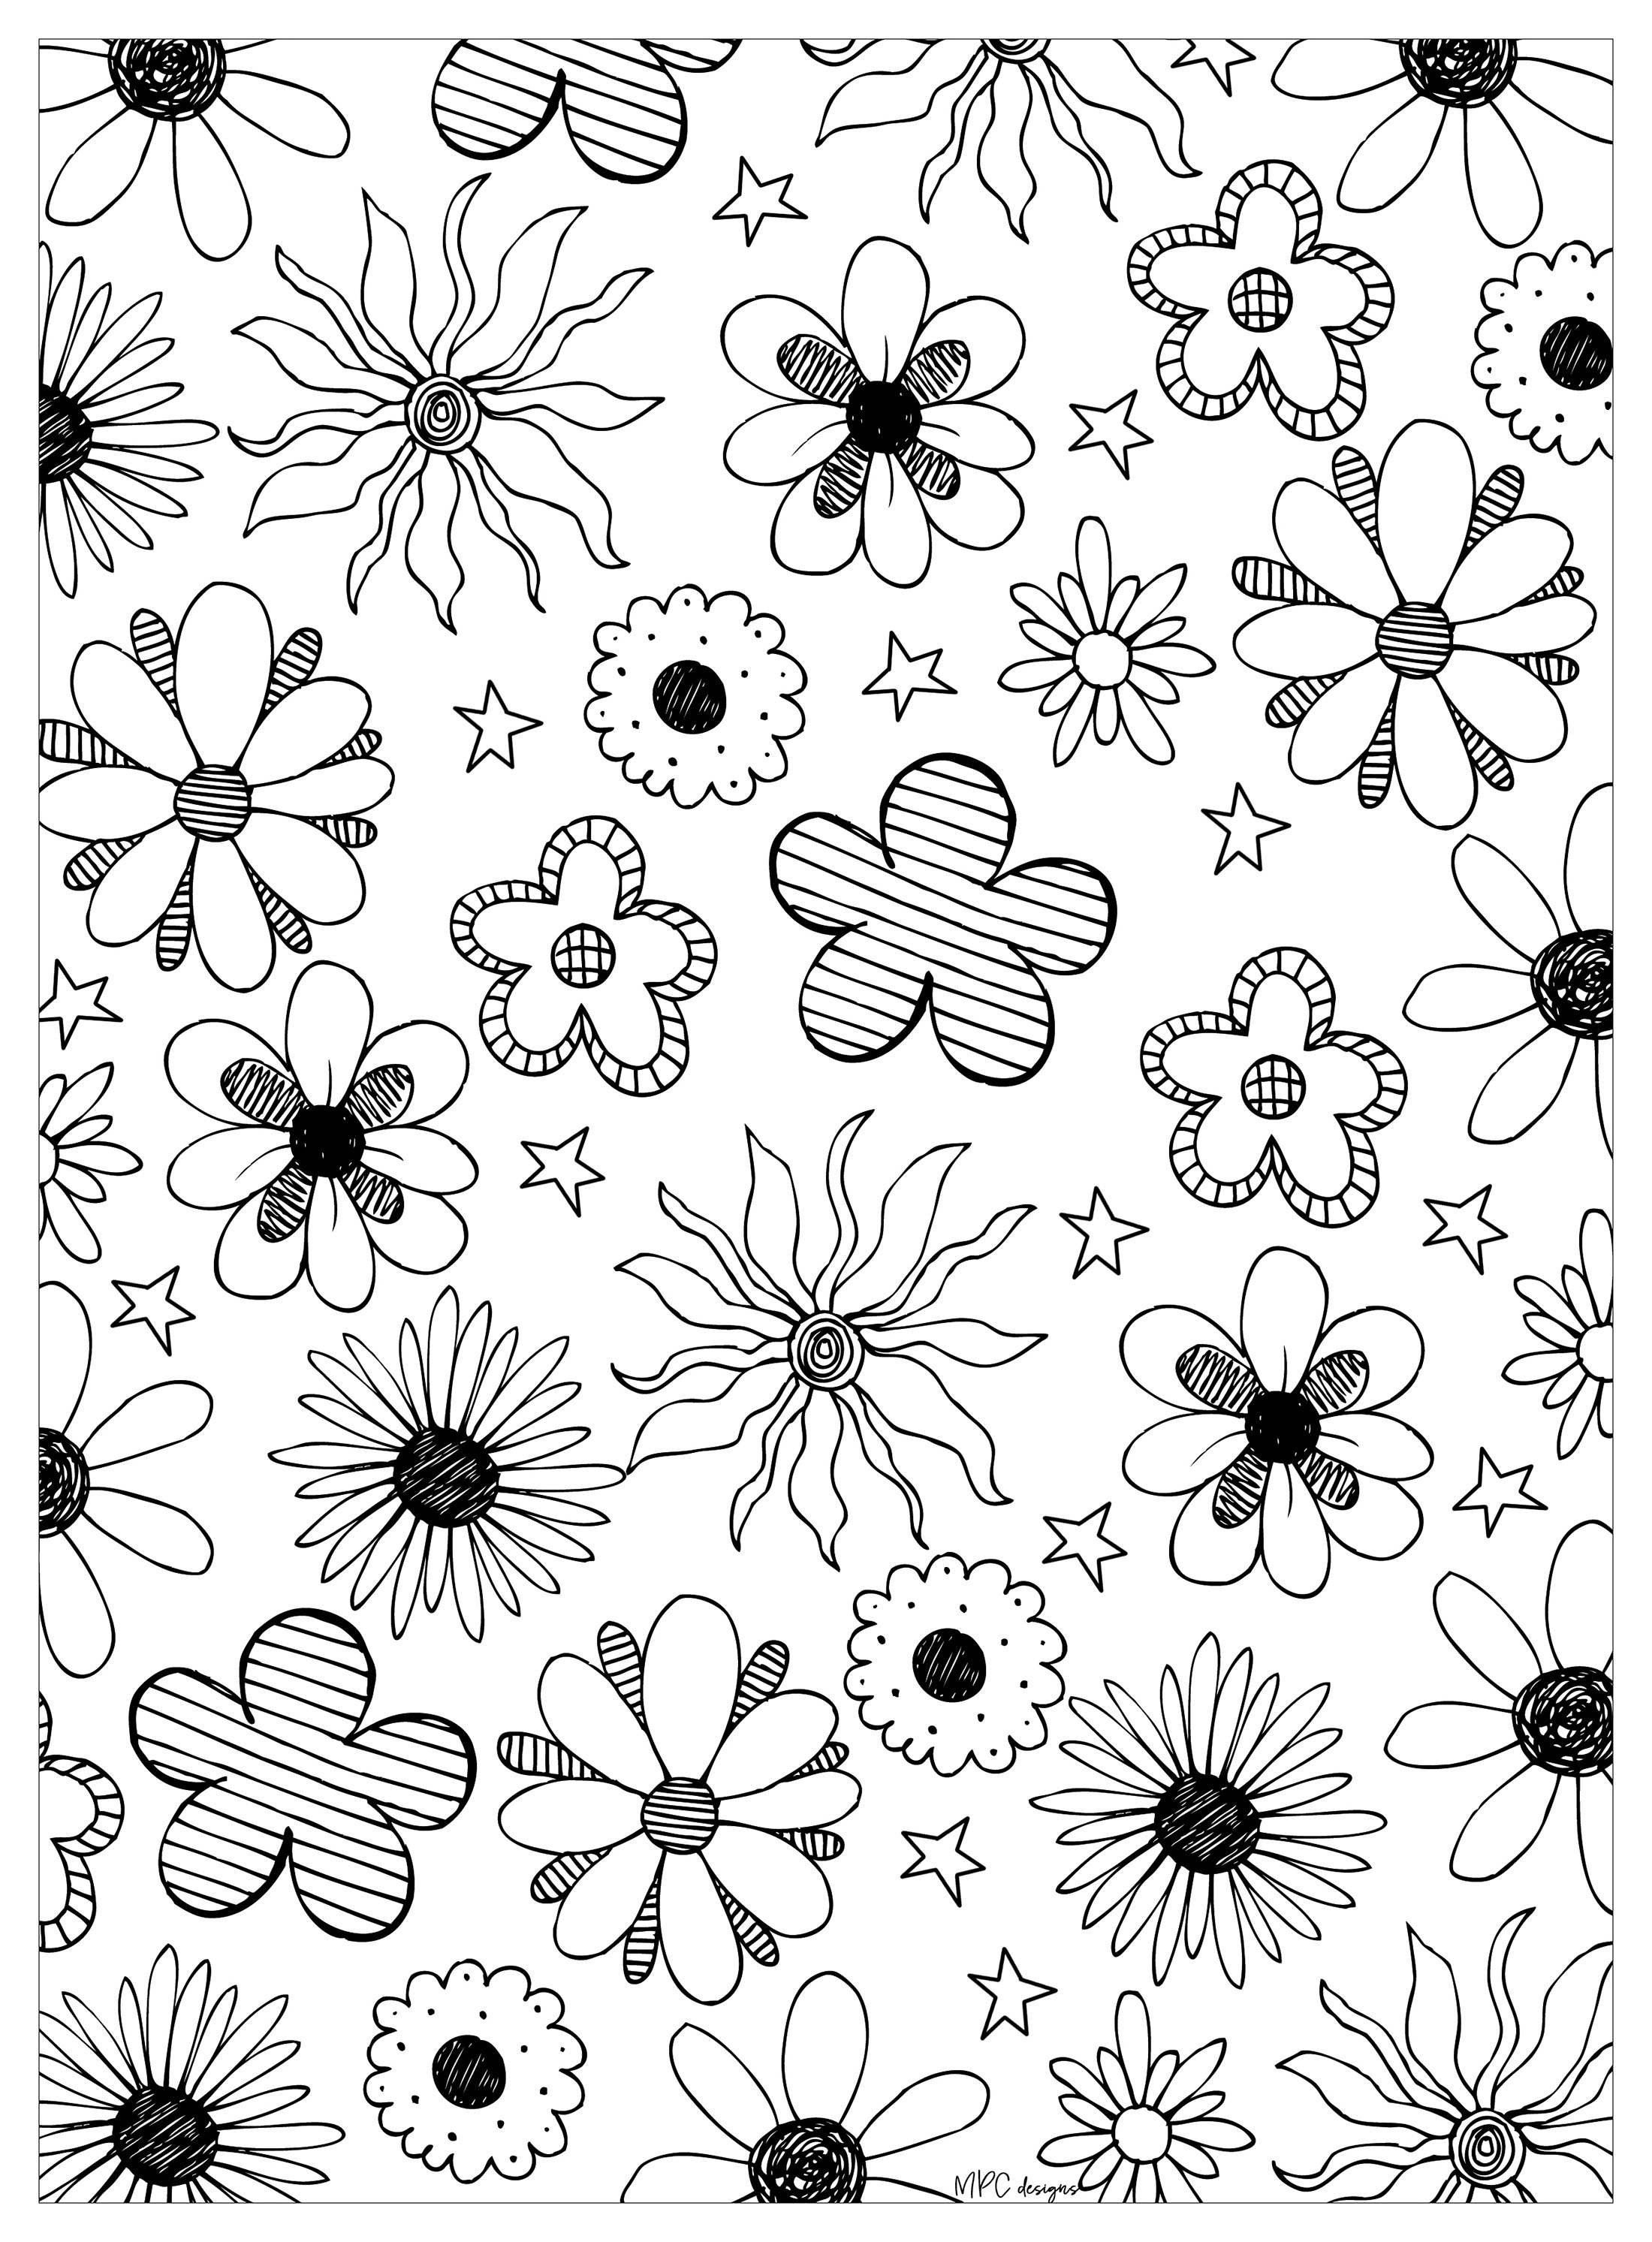 Flowers to color for children - Flowers Kids Coloring Pages